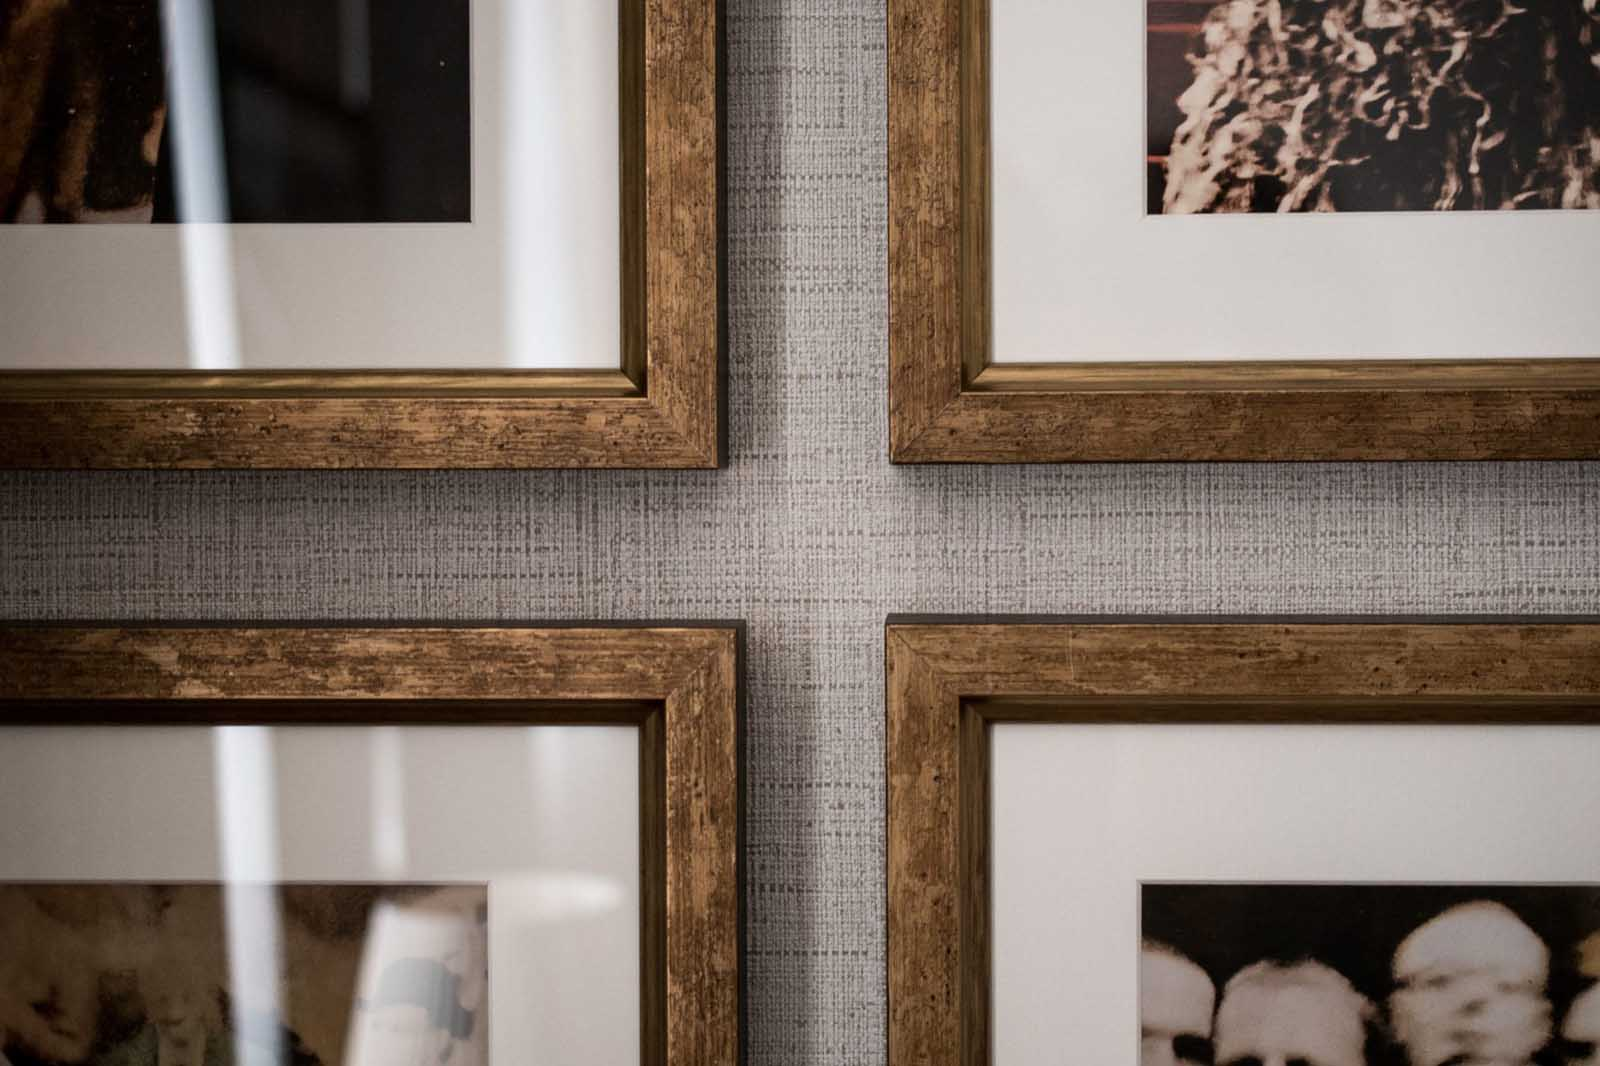 Four wooden picture frames hanging on a wall